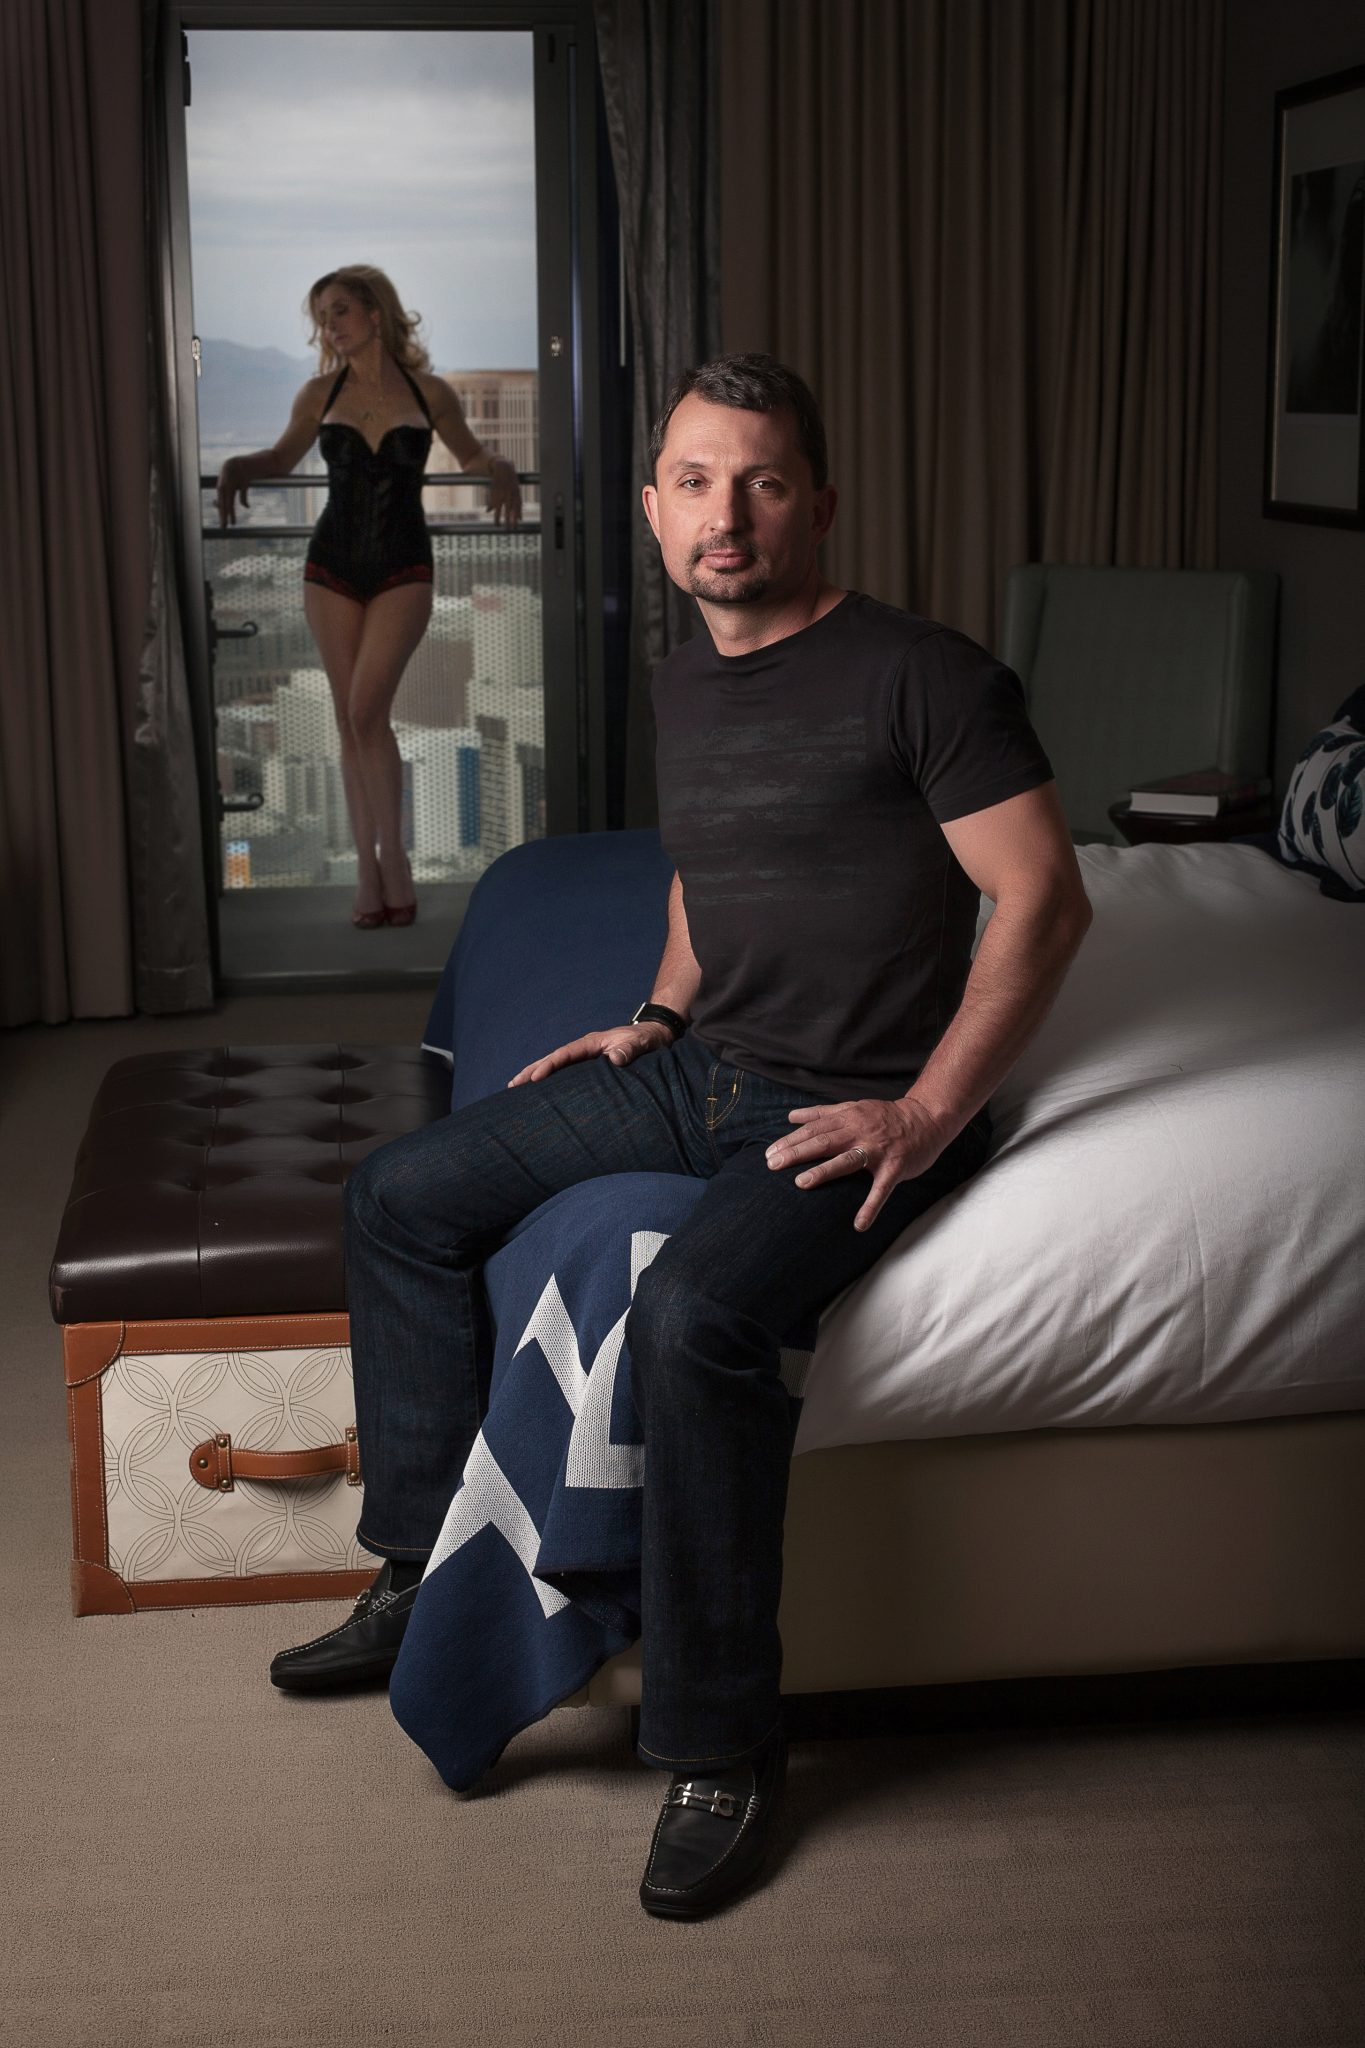 couples boudoir photography featuring the man.